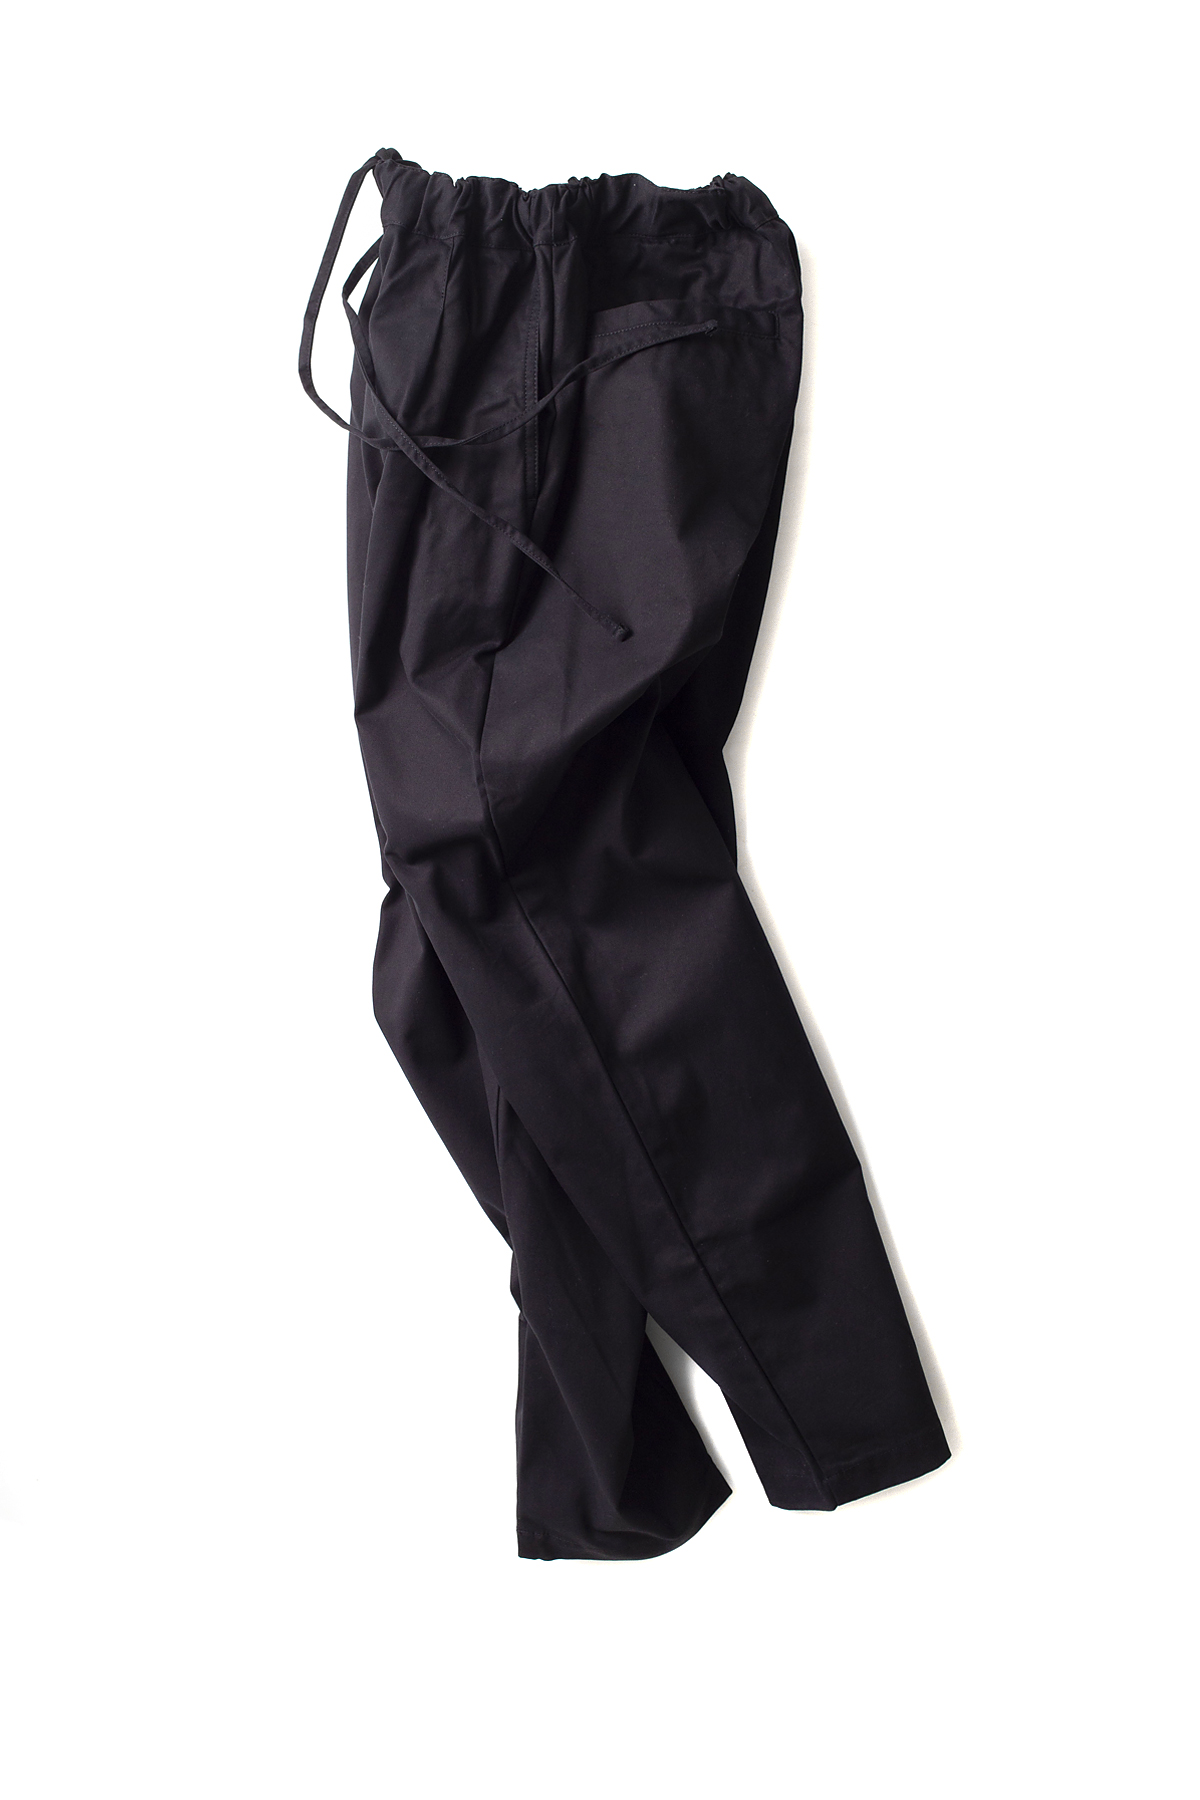 RINEN : One Tuck Easy Pants 43907 (Black)